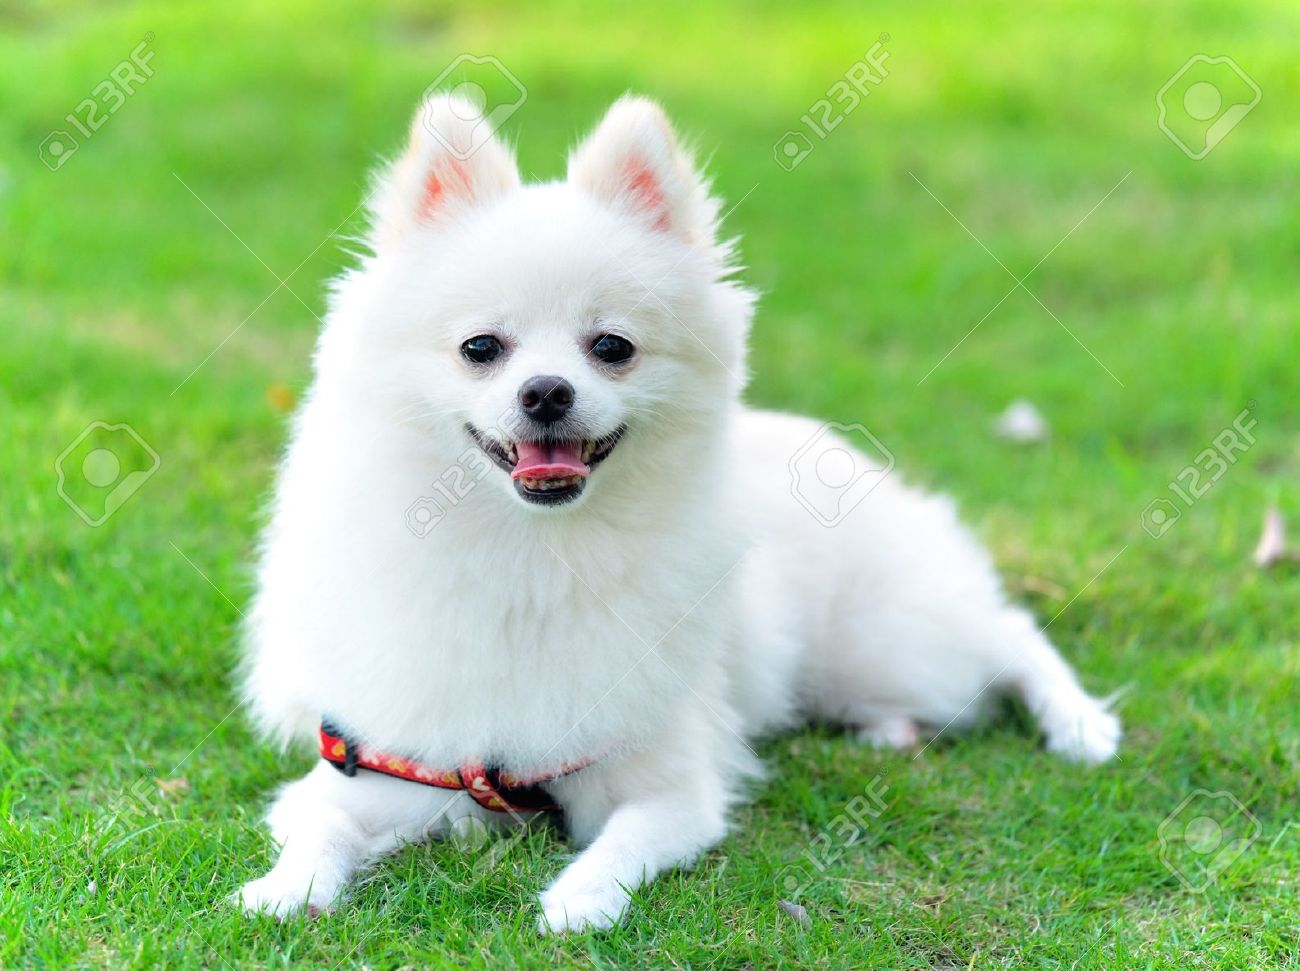 36 Most Amazing White Pomeranian Pictures And Photos